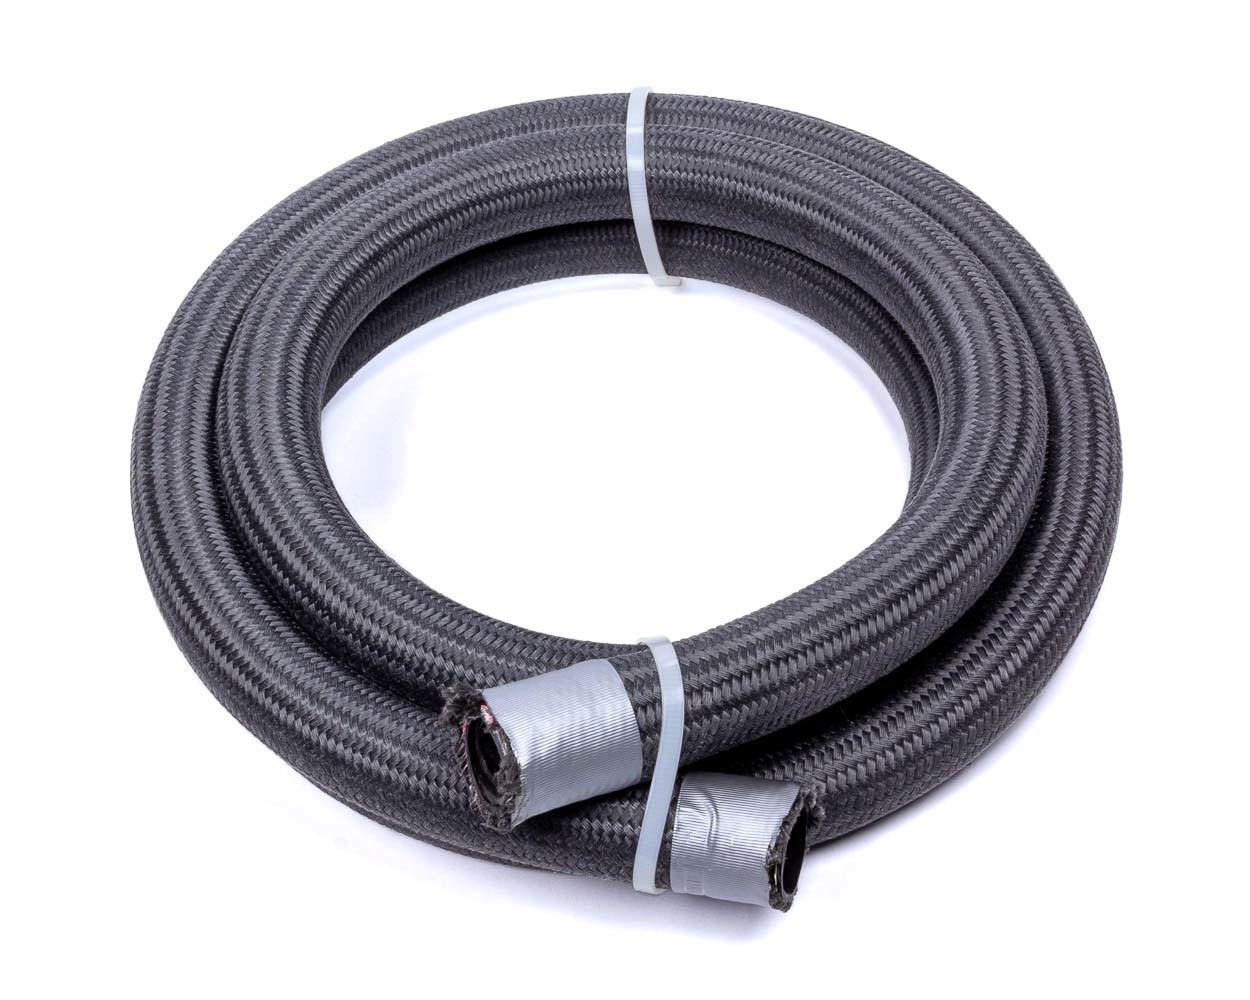 Fragola 2712012 Hose, 12 AN, 20 ft, Braided Fire Retardant Fabric, Wire Reinforced, PTFE, Black, Each